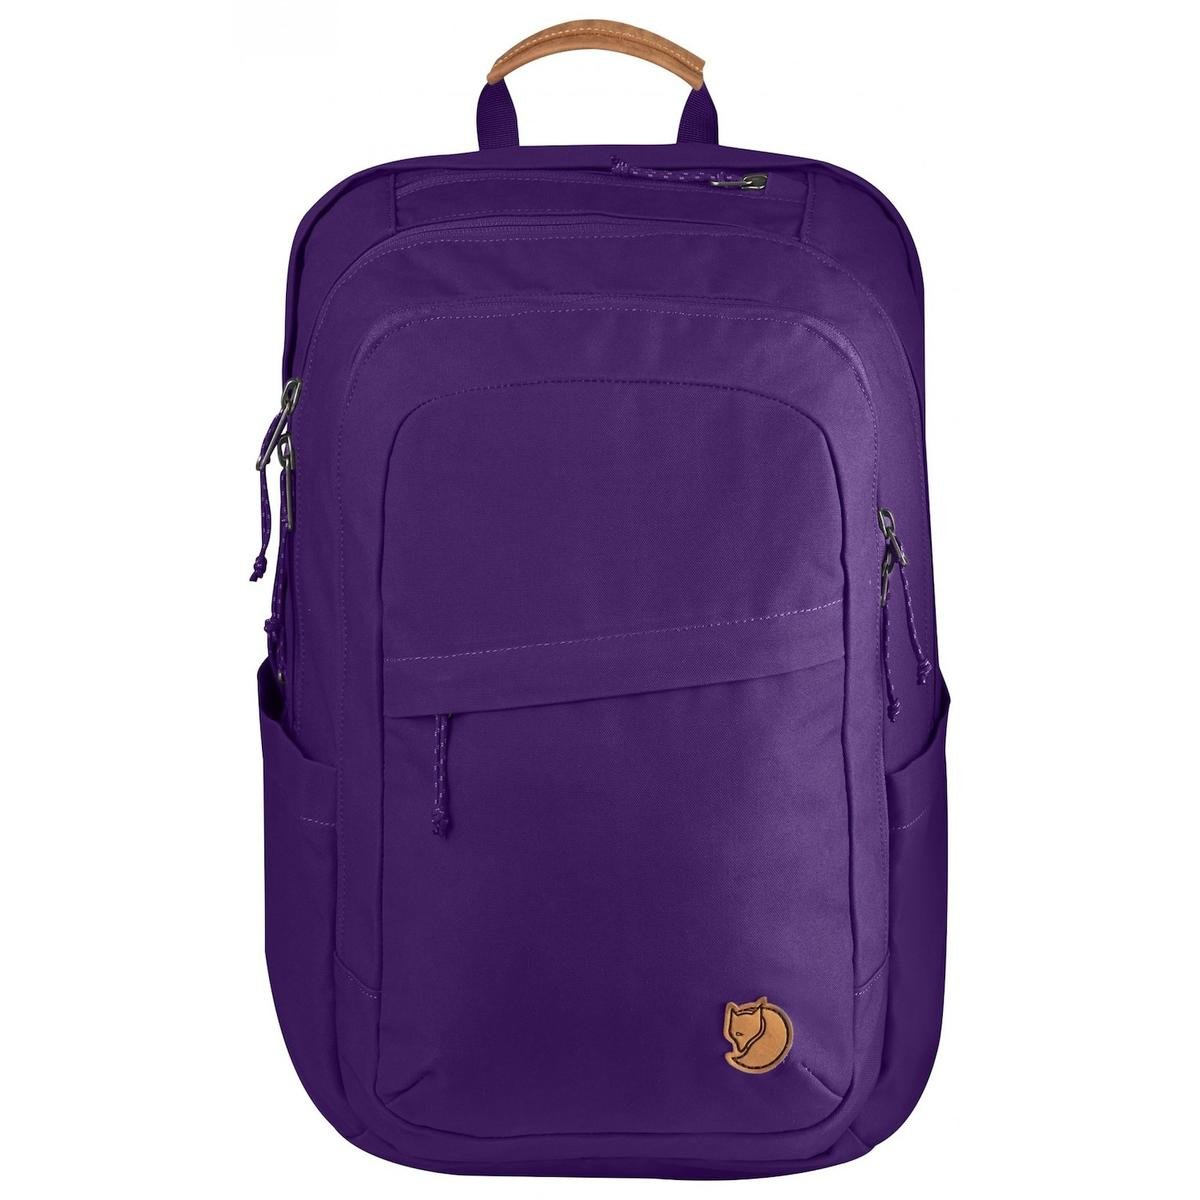 Fjallraven - Raven 28L, Purple by Fjallraven